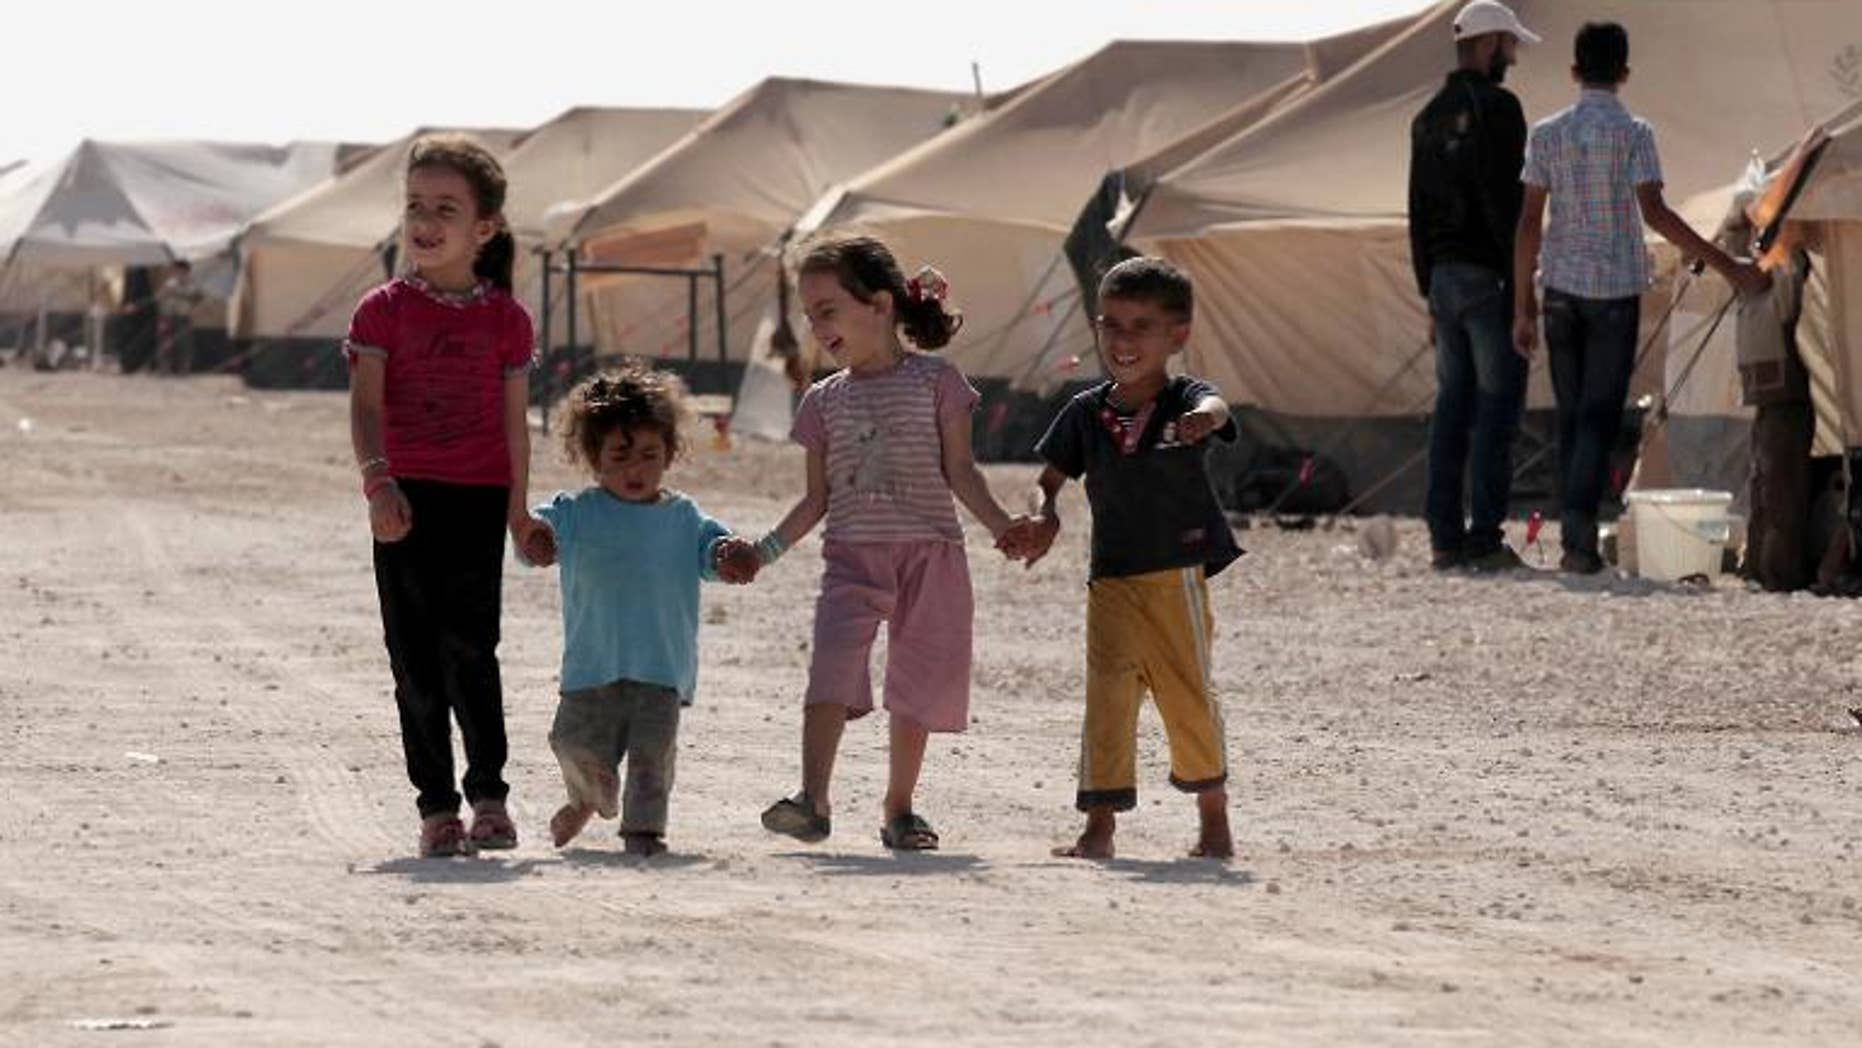 Syrian refugee children walk amid tents at the Zaatri refugee camp, near the Jordanian border with Syria, on September 11, 2012